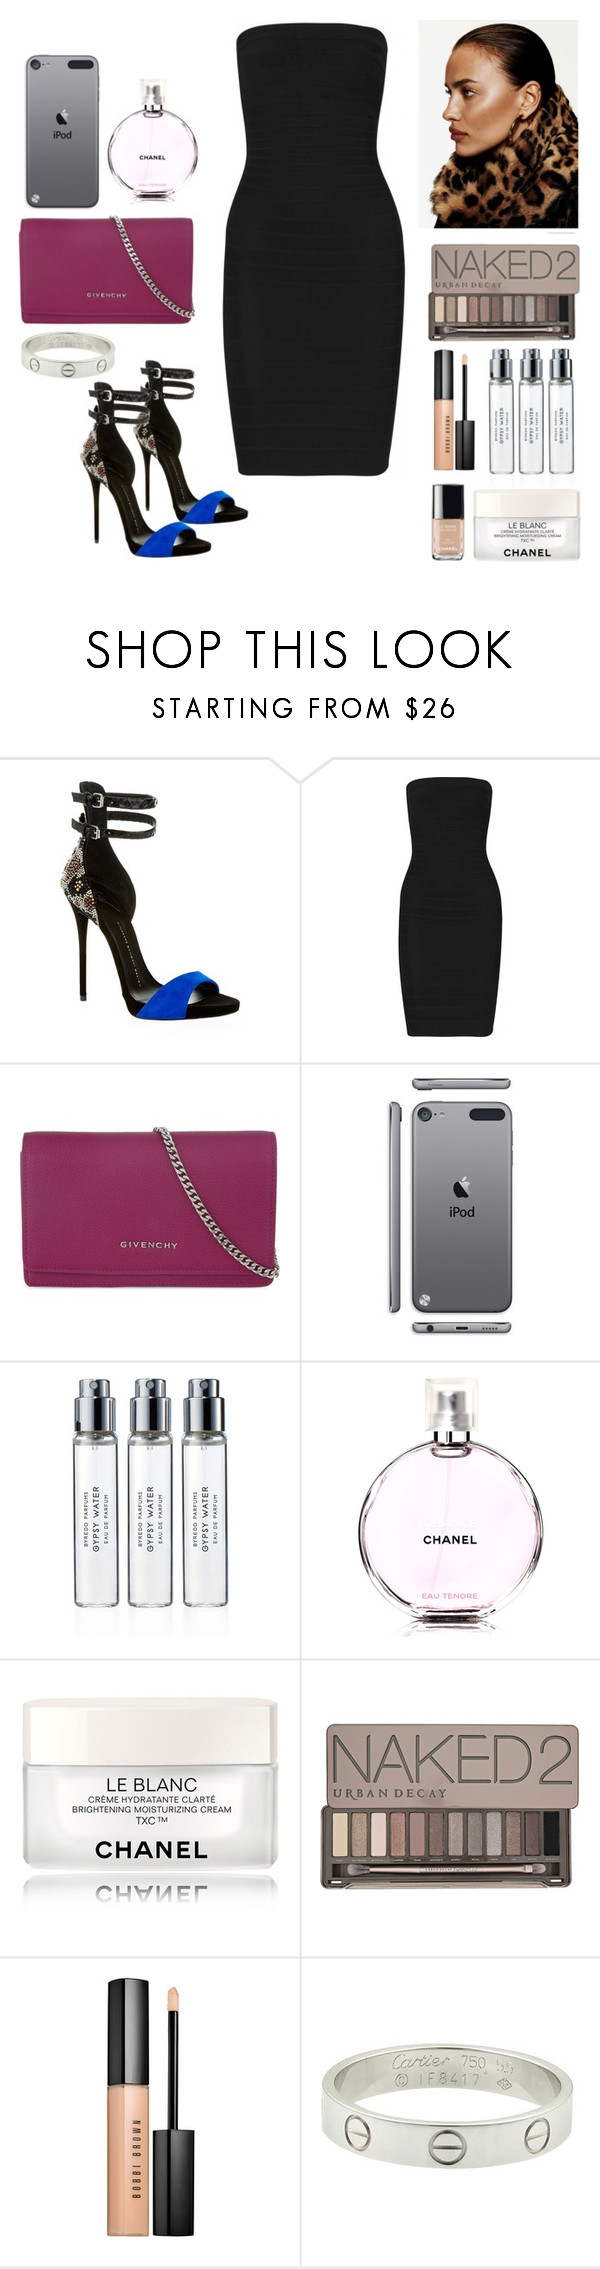 """""""dinner time #colombia#vocations"""" by pimargarida ❤ liked on Polyvore featuring Giuseppe Zanotti, Hervé Léger, Givenchy, Chanel, Byredo, Urban Decay, Bobbi Brown Cosmetics and Cartier"""